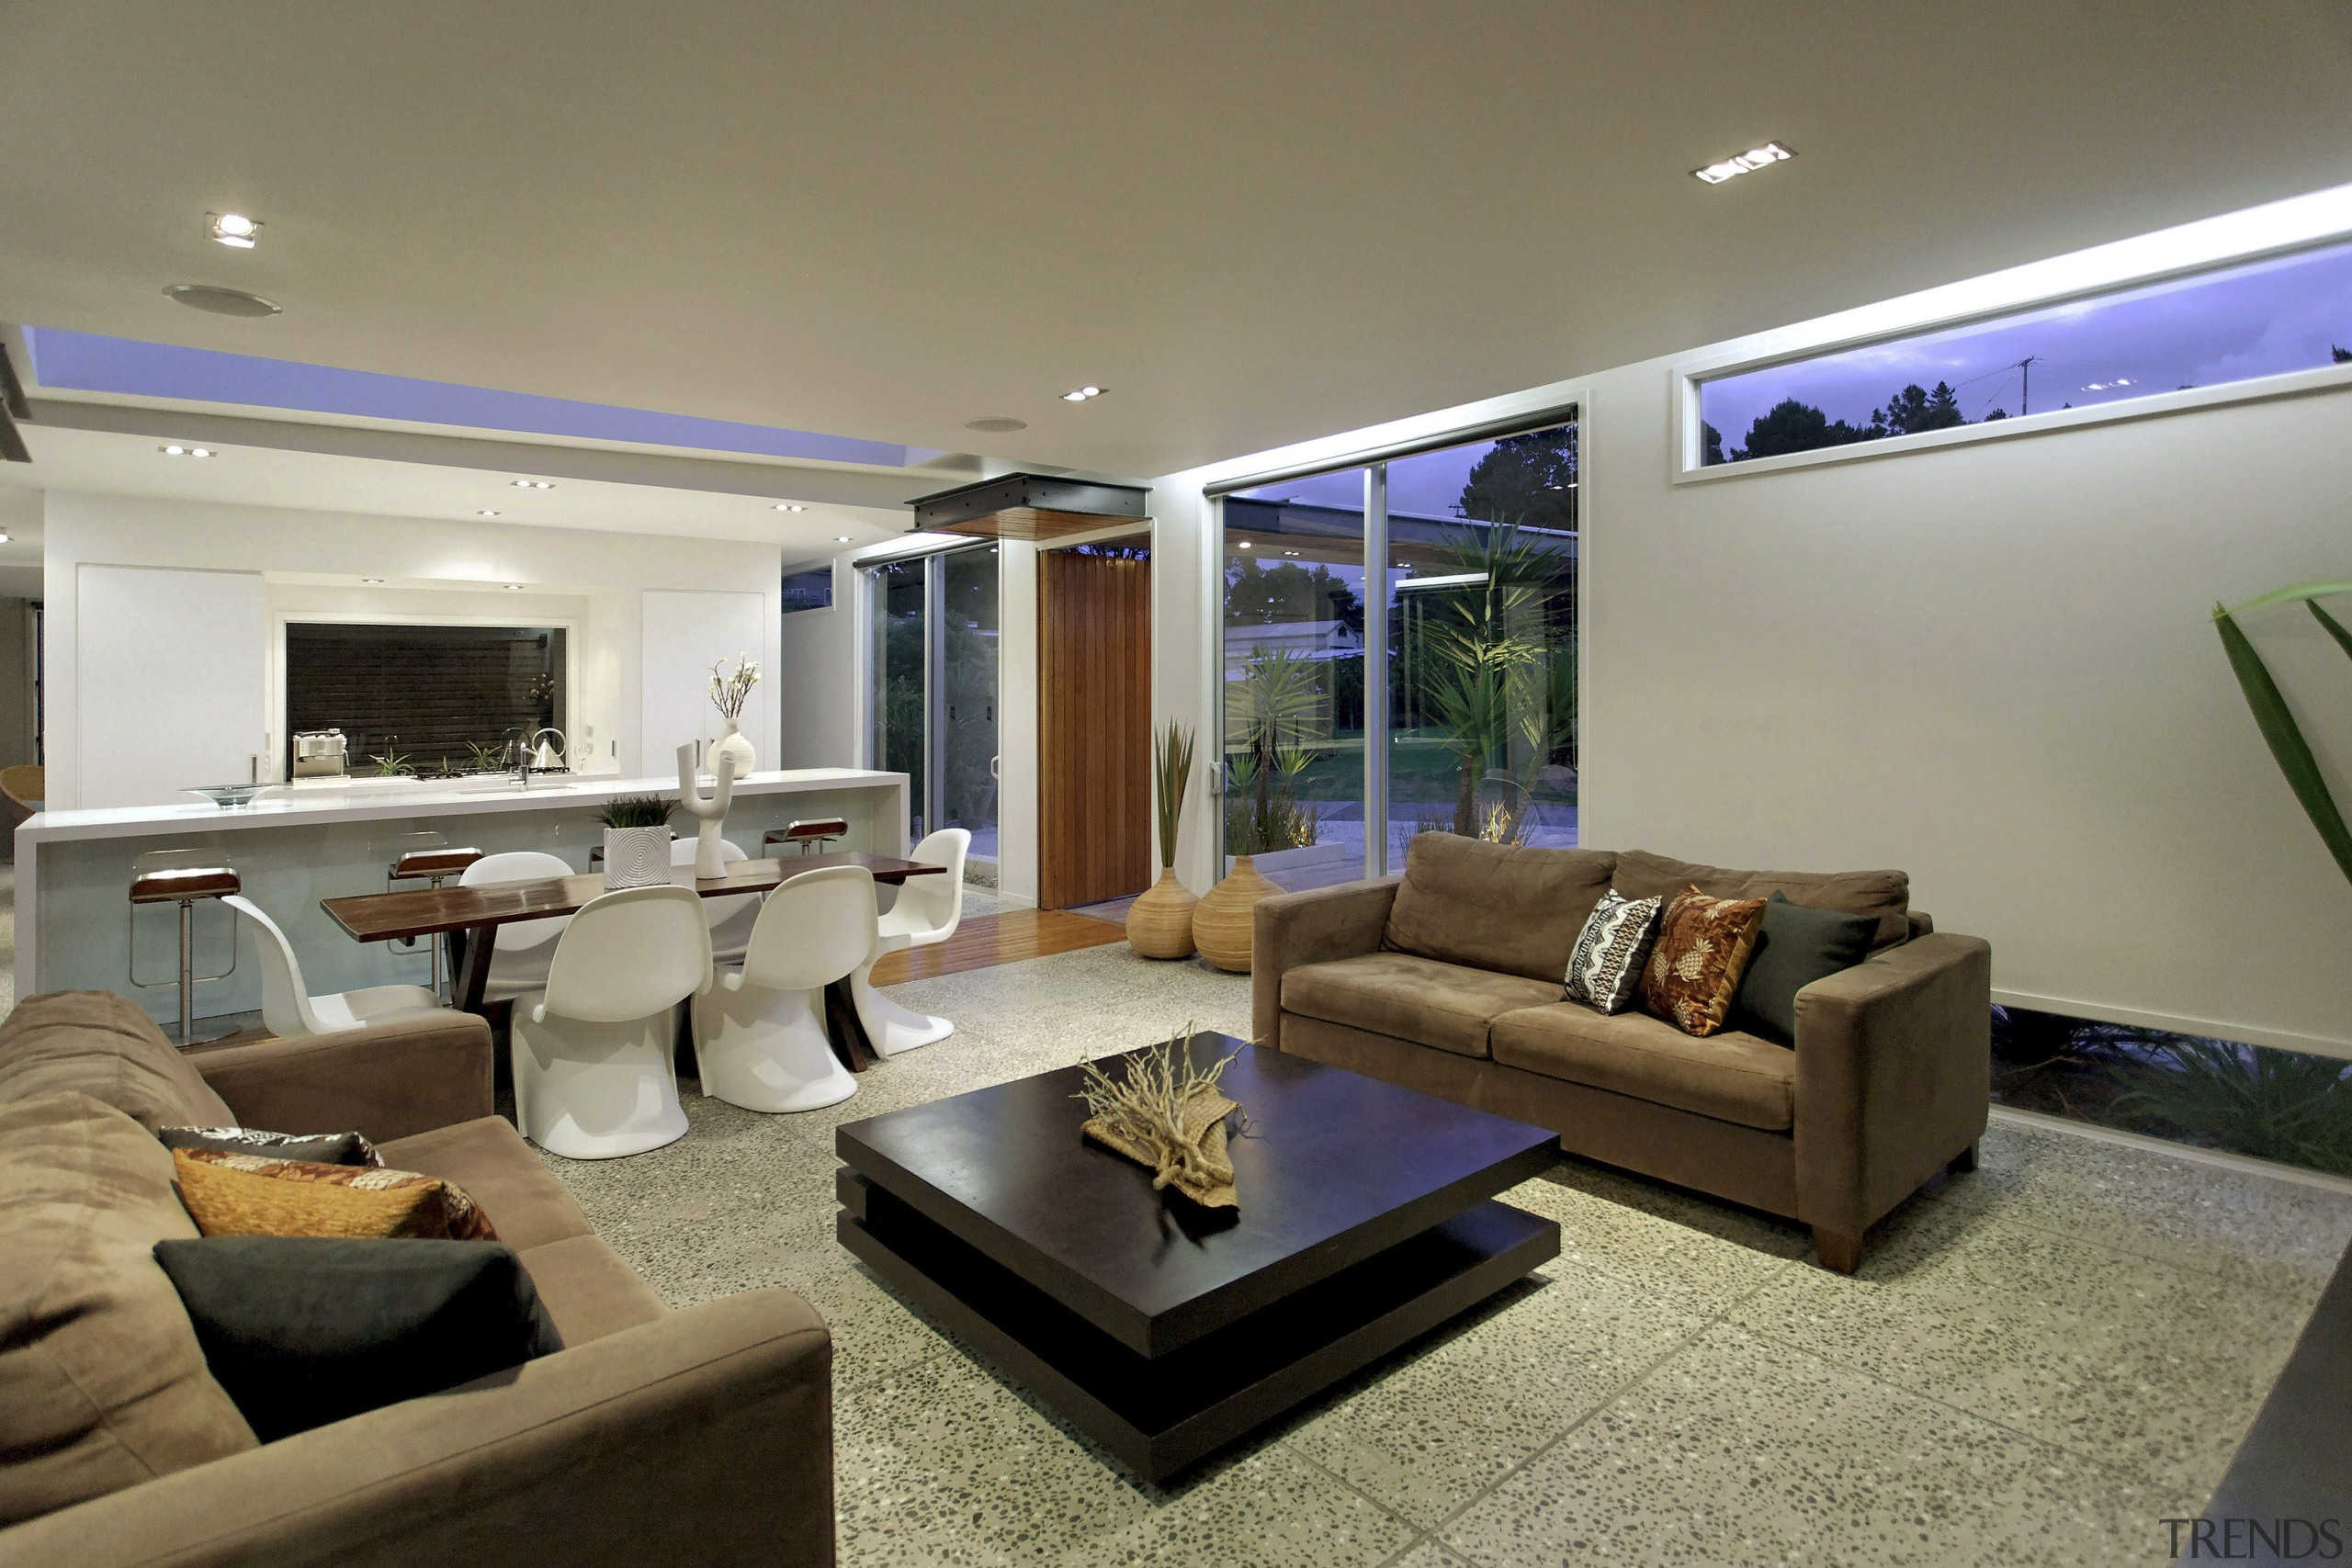 View of main living area - View of ceiling, home, interior design, living room, property, real estate, room, gray, brown